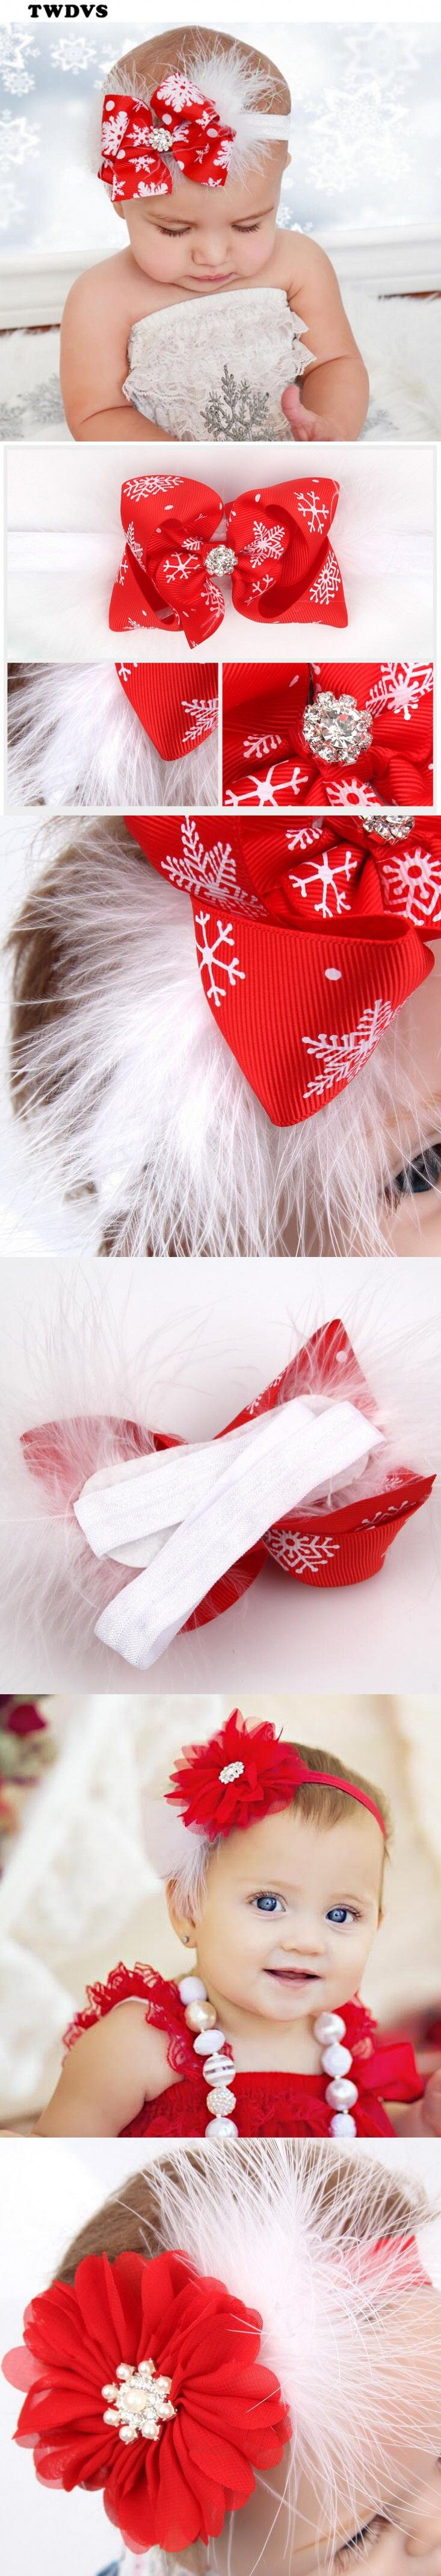 Baby Christmas Headband Feather Bow Snow Flower Girls HairBand Toddler Baby Headwear Merry Christmas Hair Accessories TWDVS W245 $2.2